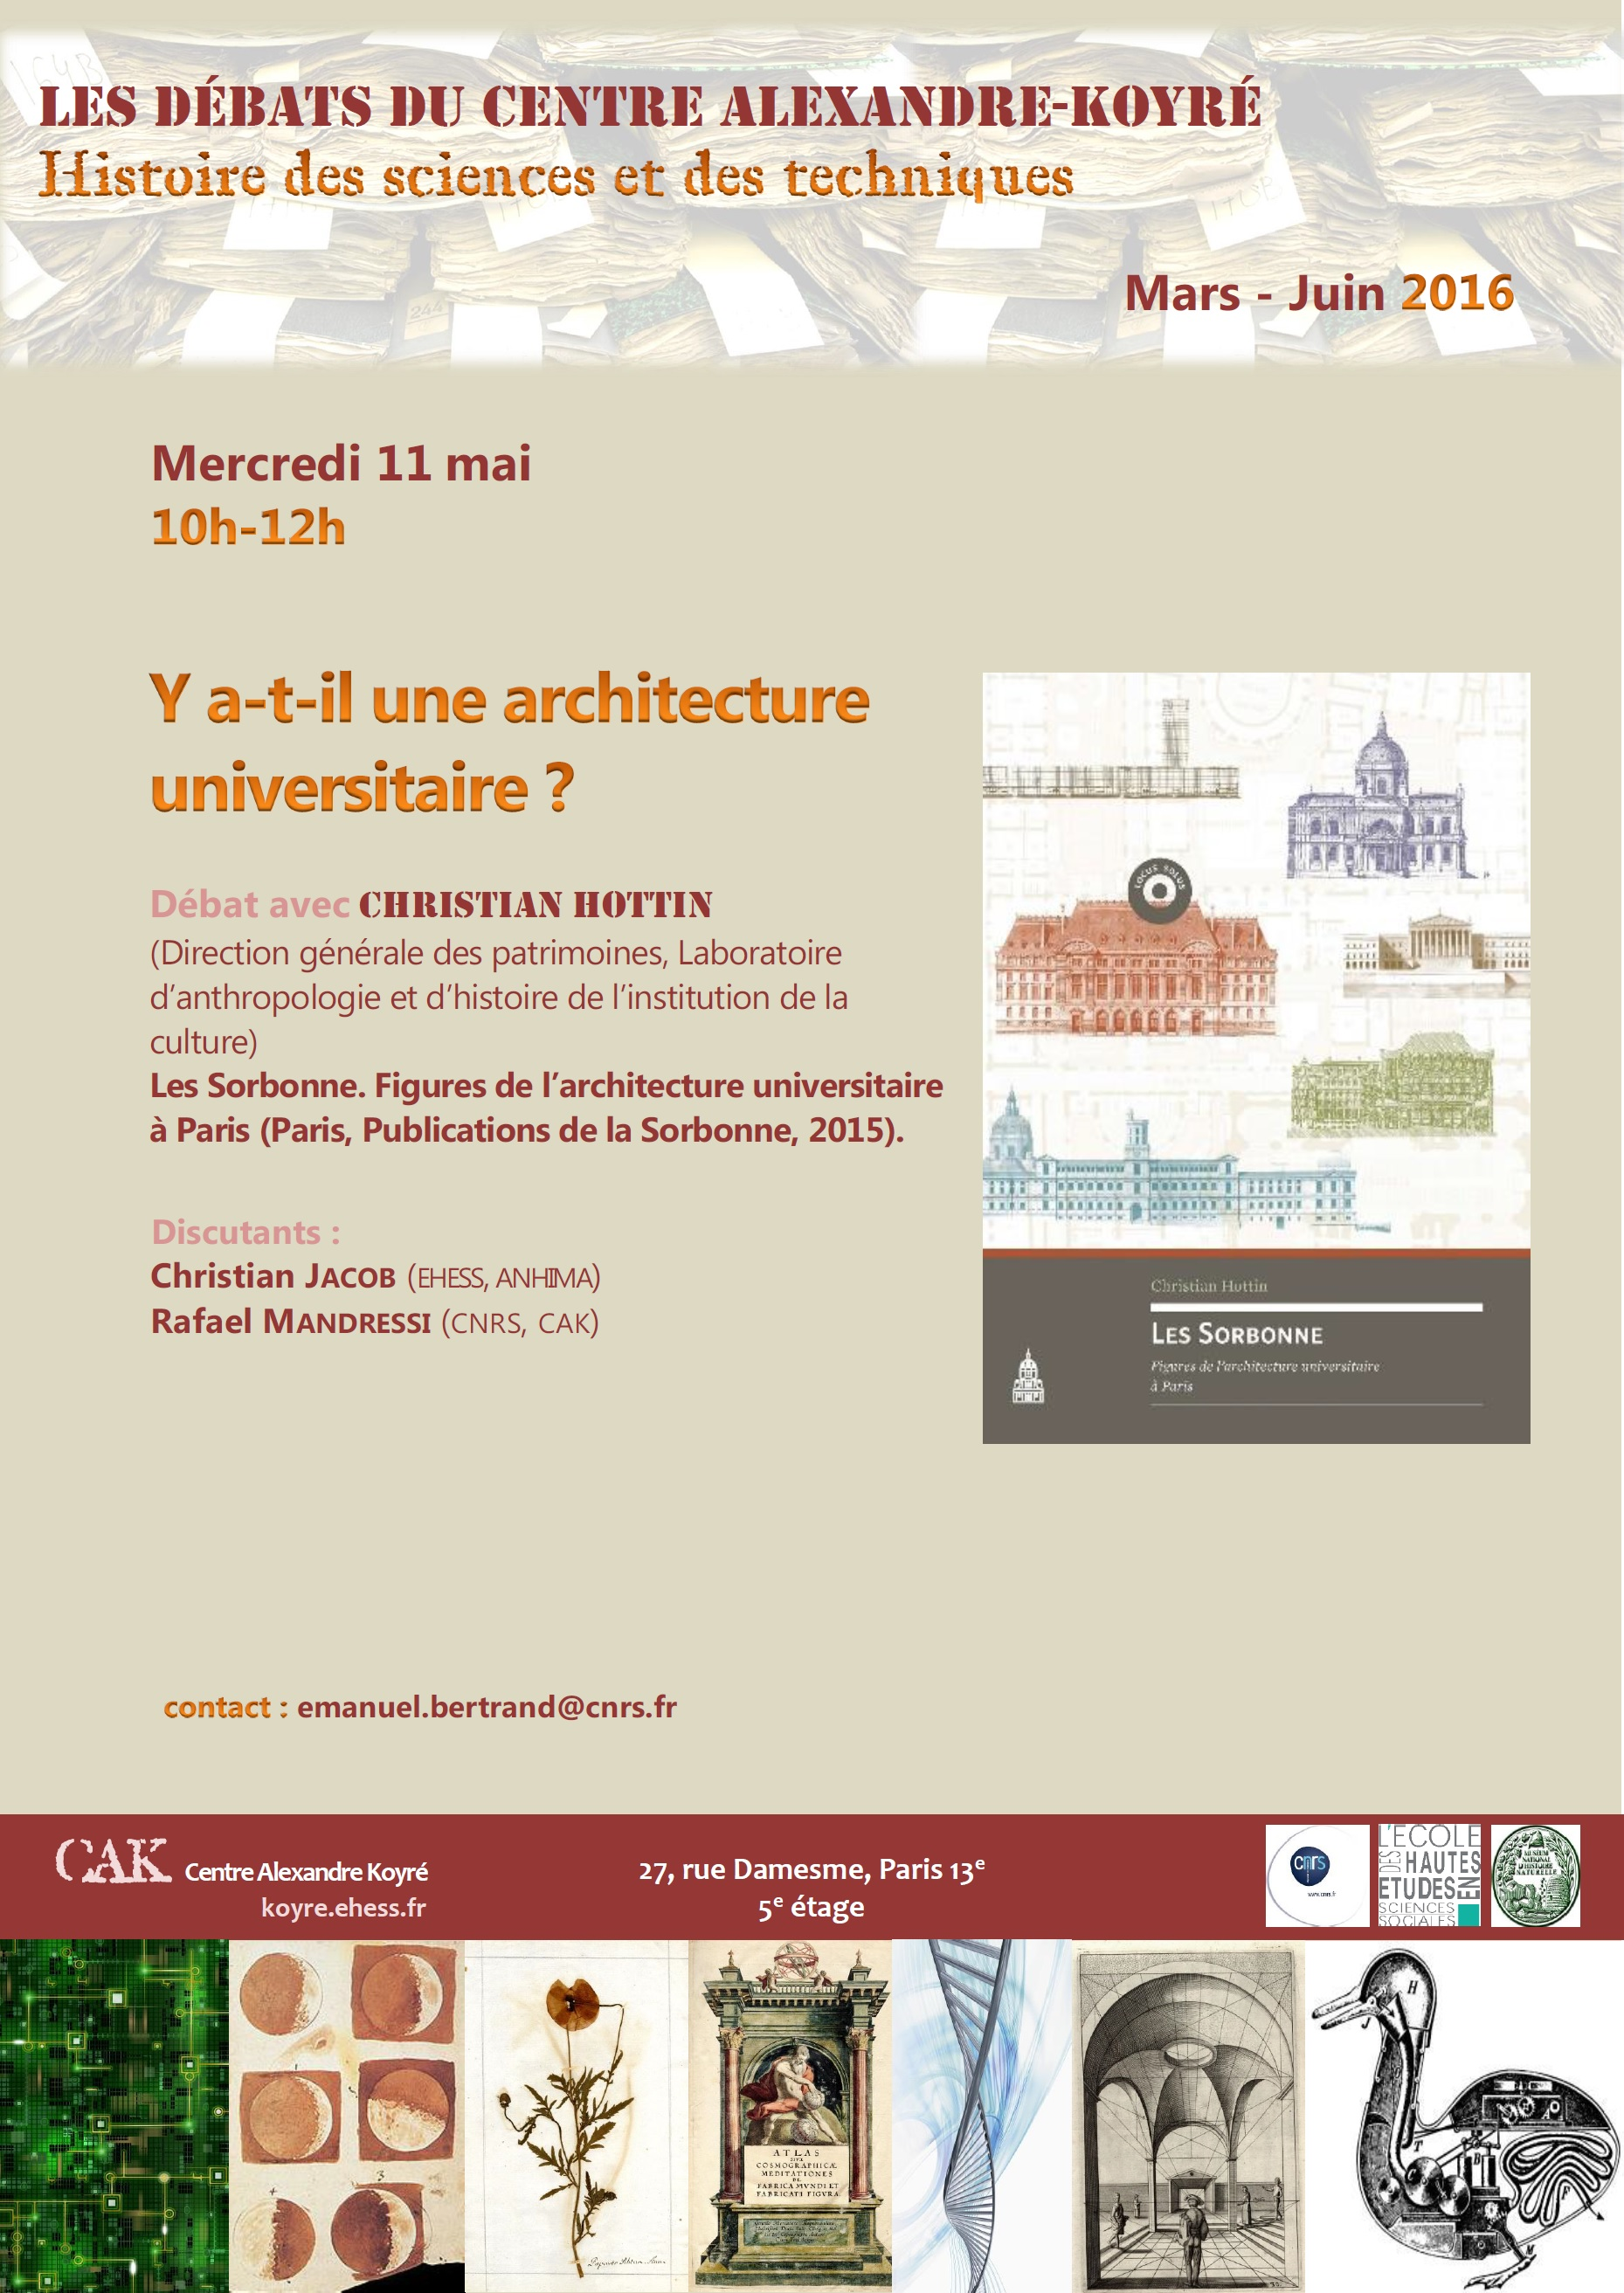 Y a-t-il une architecture universitaire?